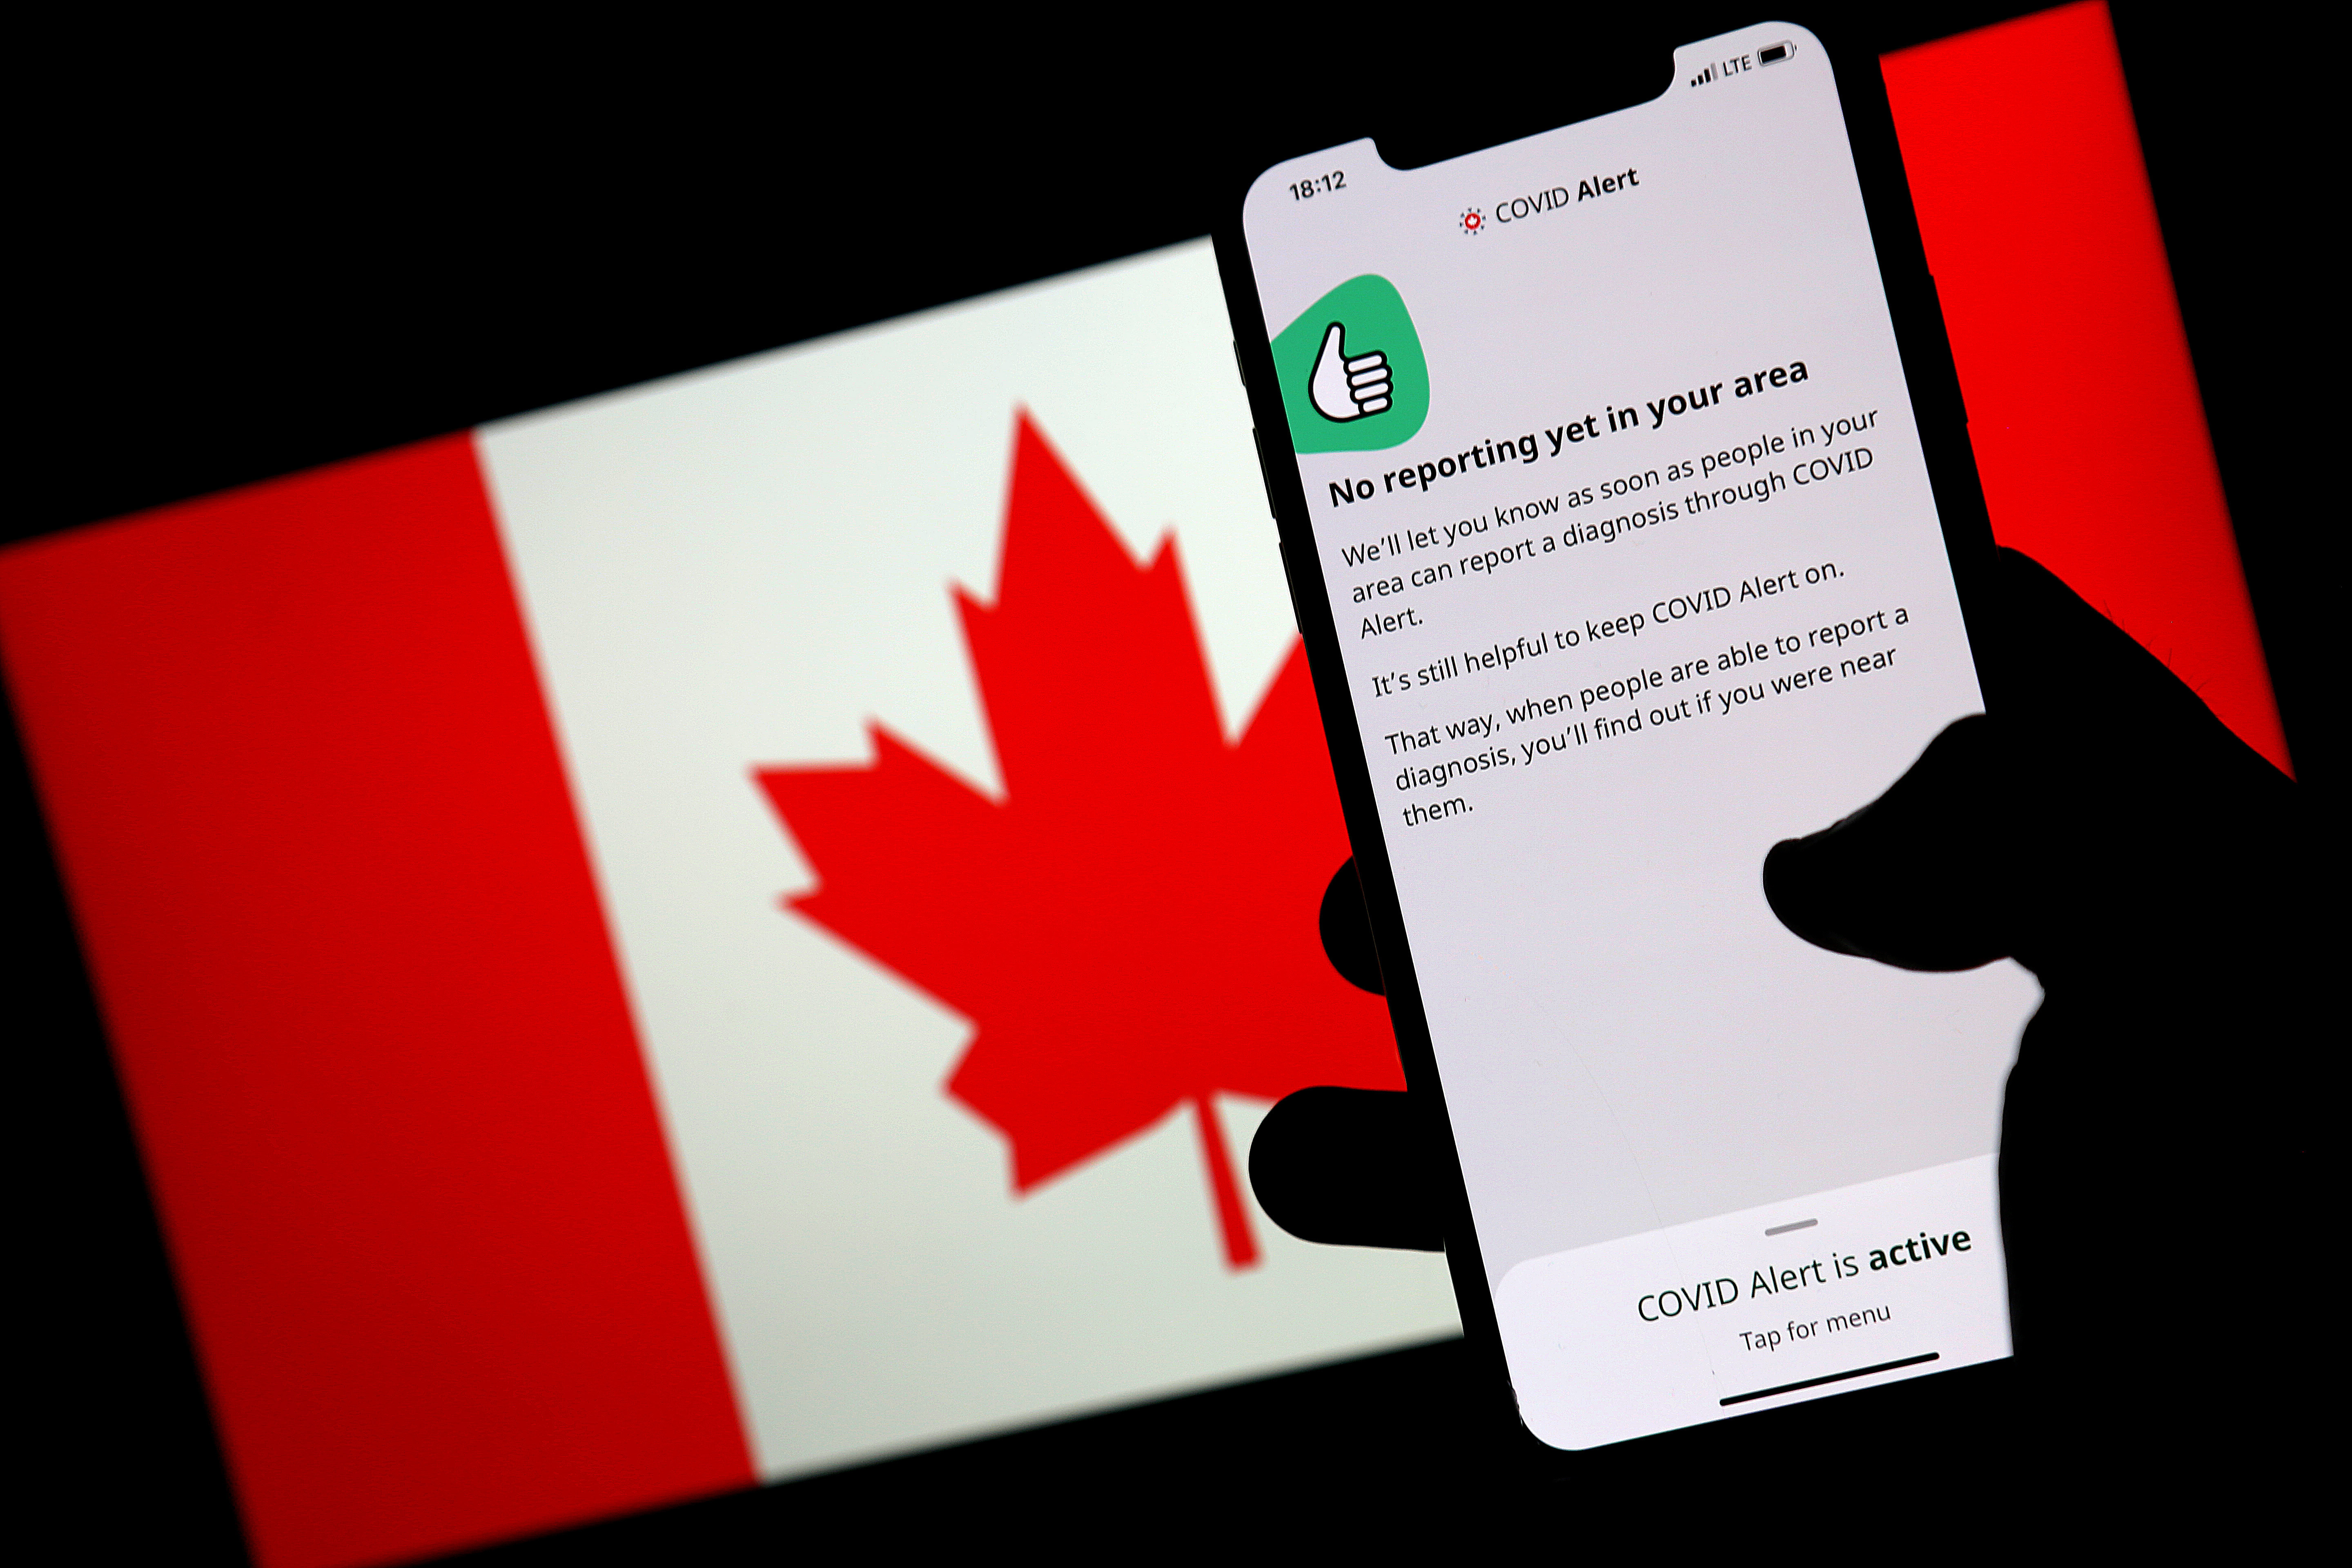 As Coronavirus Resurges Now Is The Time To Push Covid Alert App Experts National Globalnews Ca